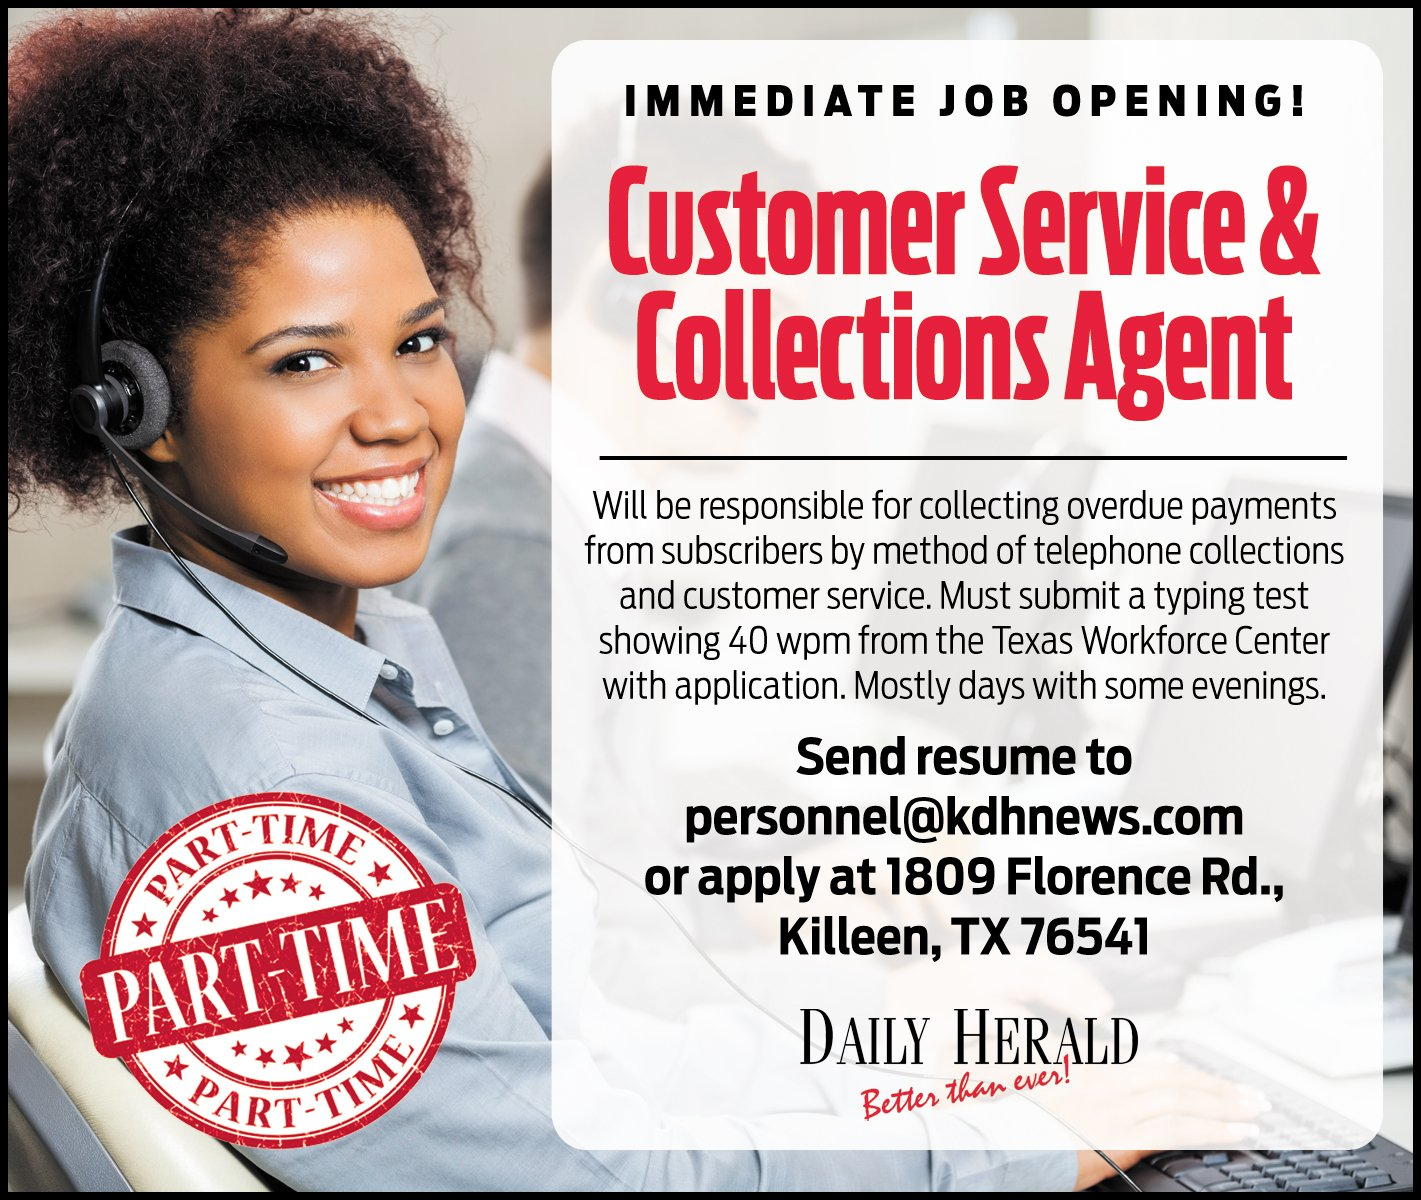 details for customer service collections agent collections agent collection agent jobs - Collection Agent Jobs